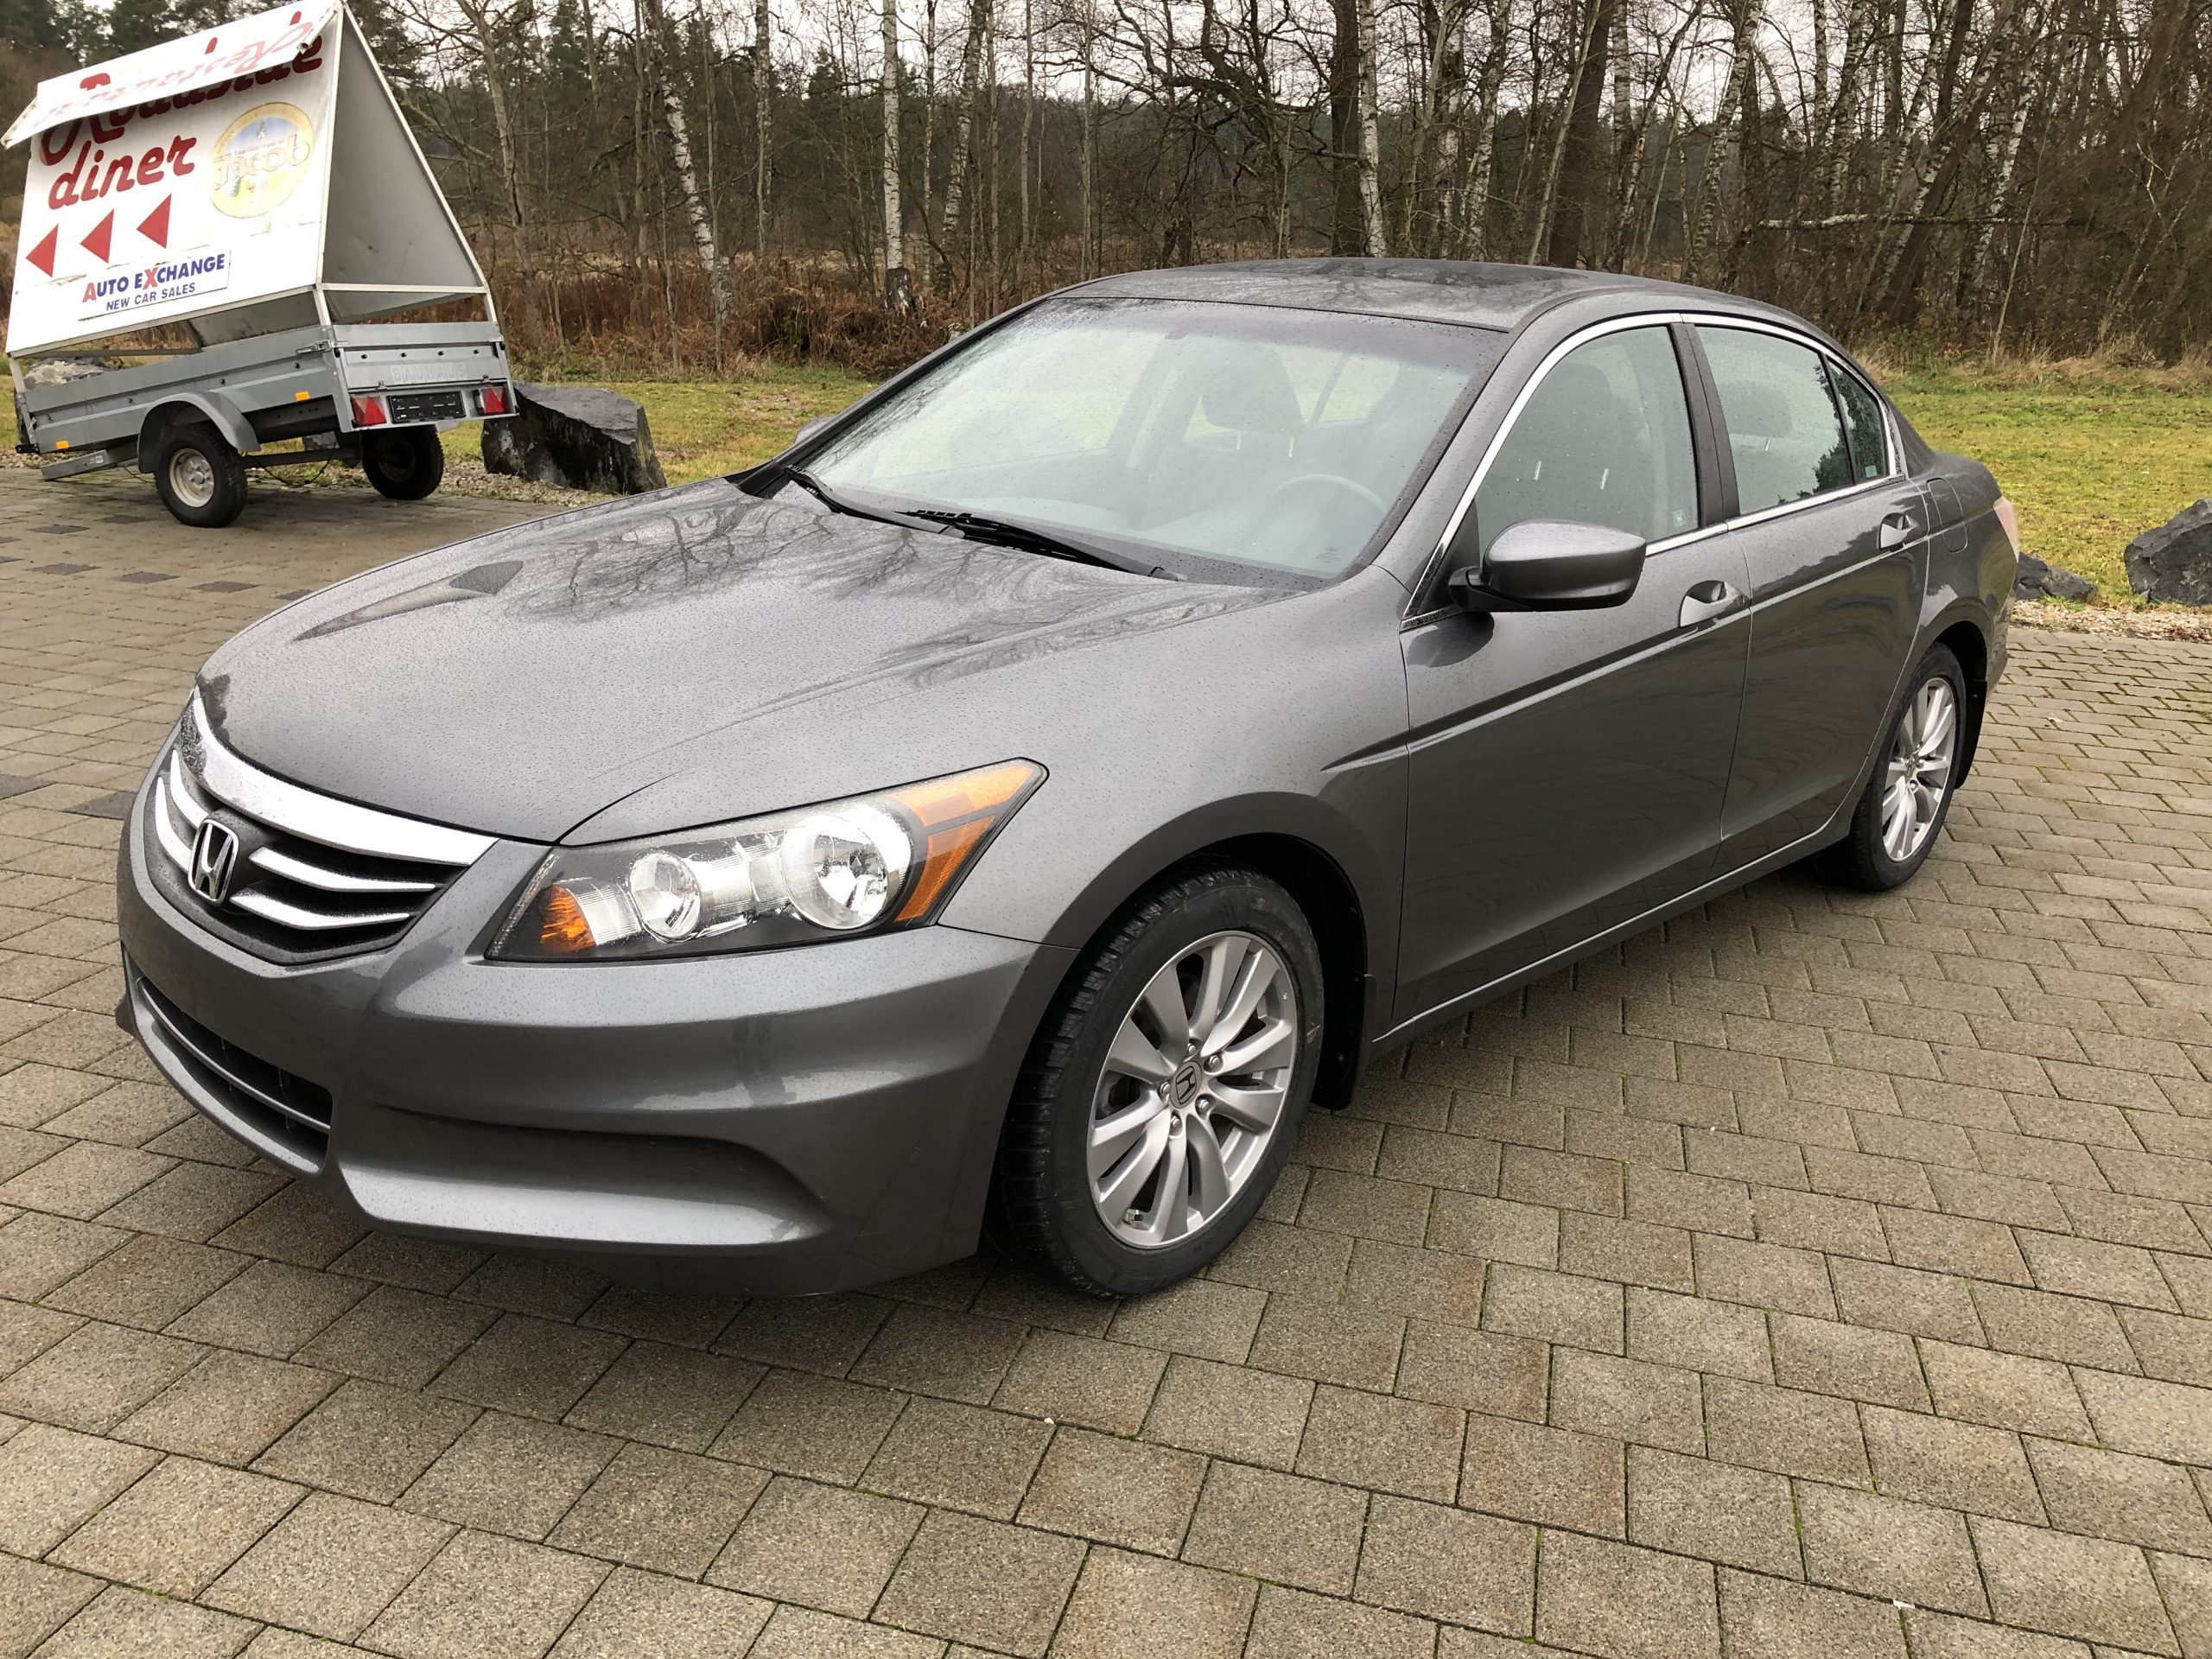 2012 Honda Accord EX</br>AS LOW AS </br>$89 per paycheck